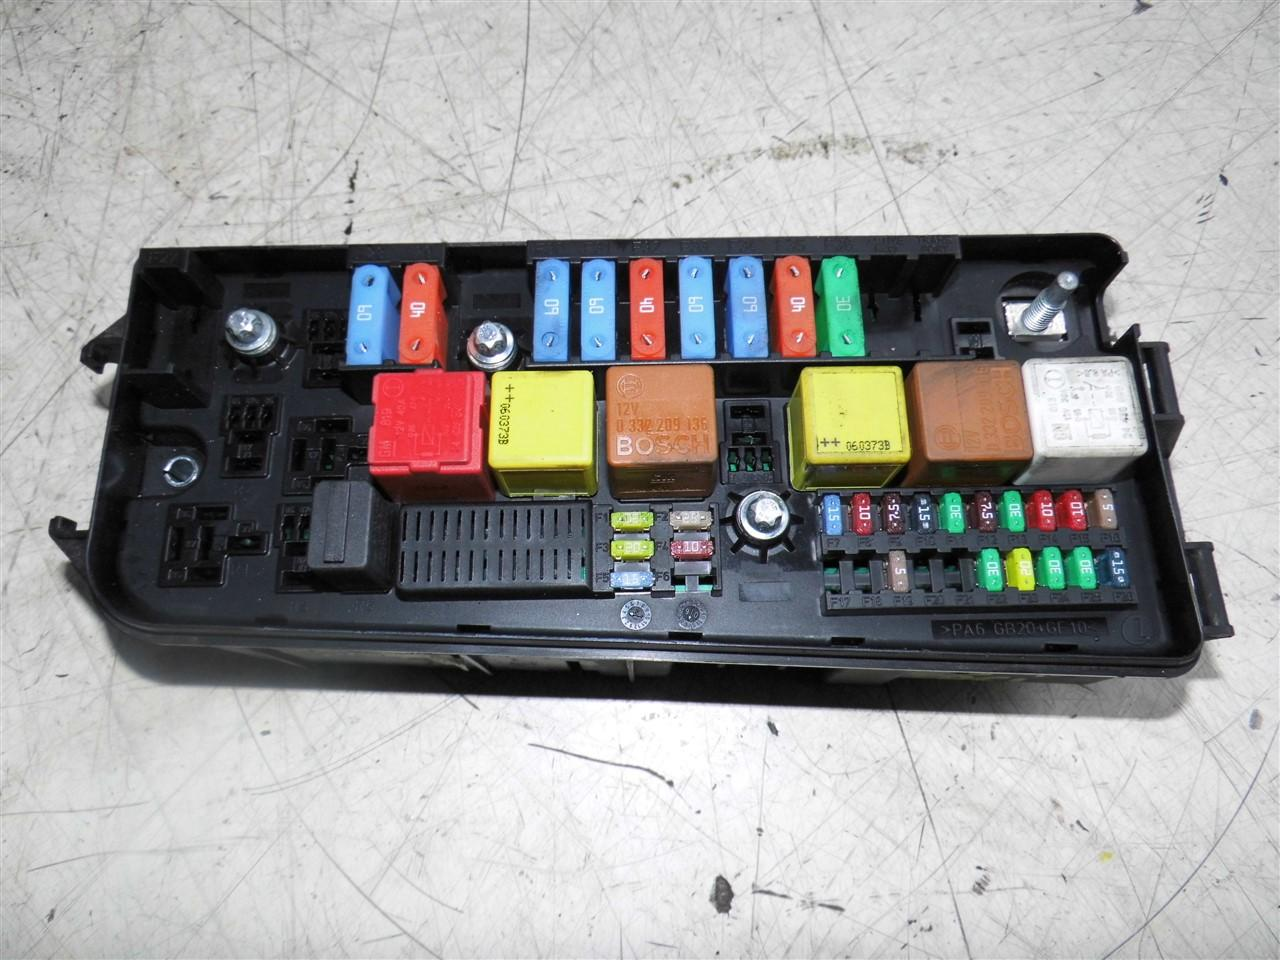 hight resolution of vauxhall vectra fuse box diagram also vauxhall vectra fuse box diagram